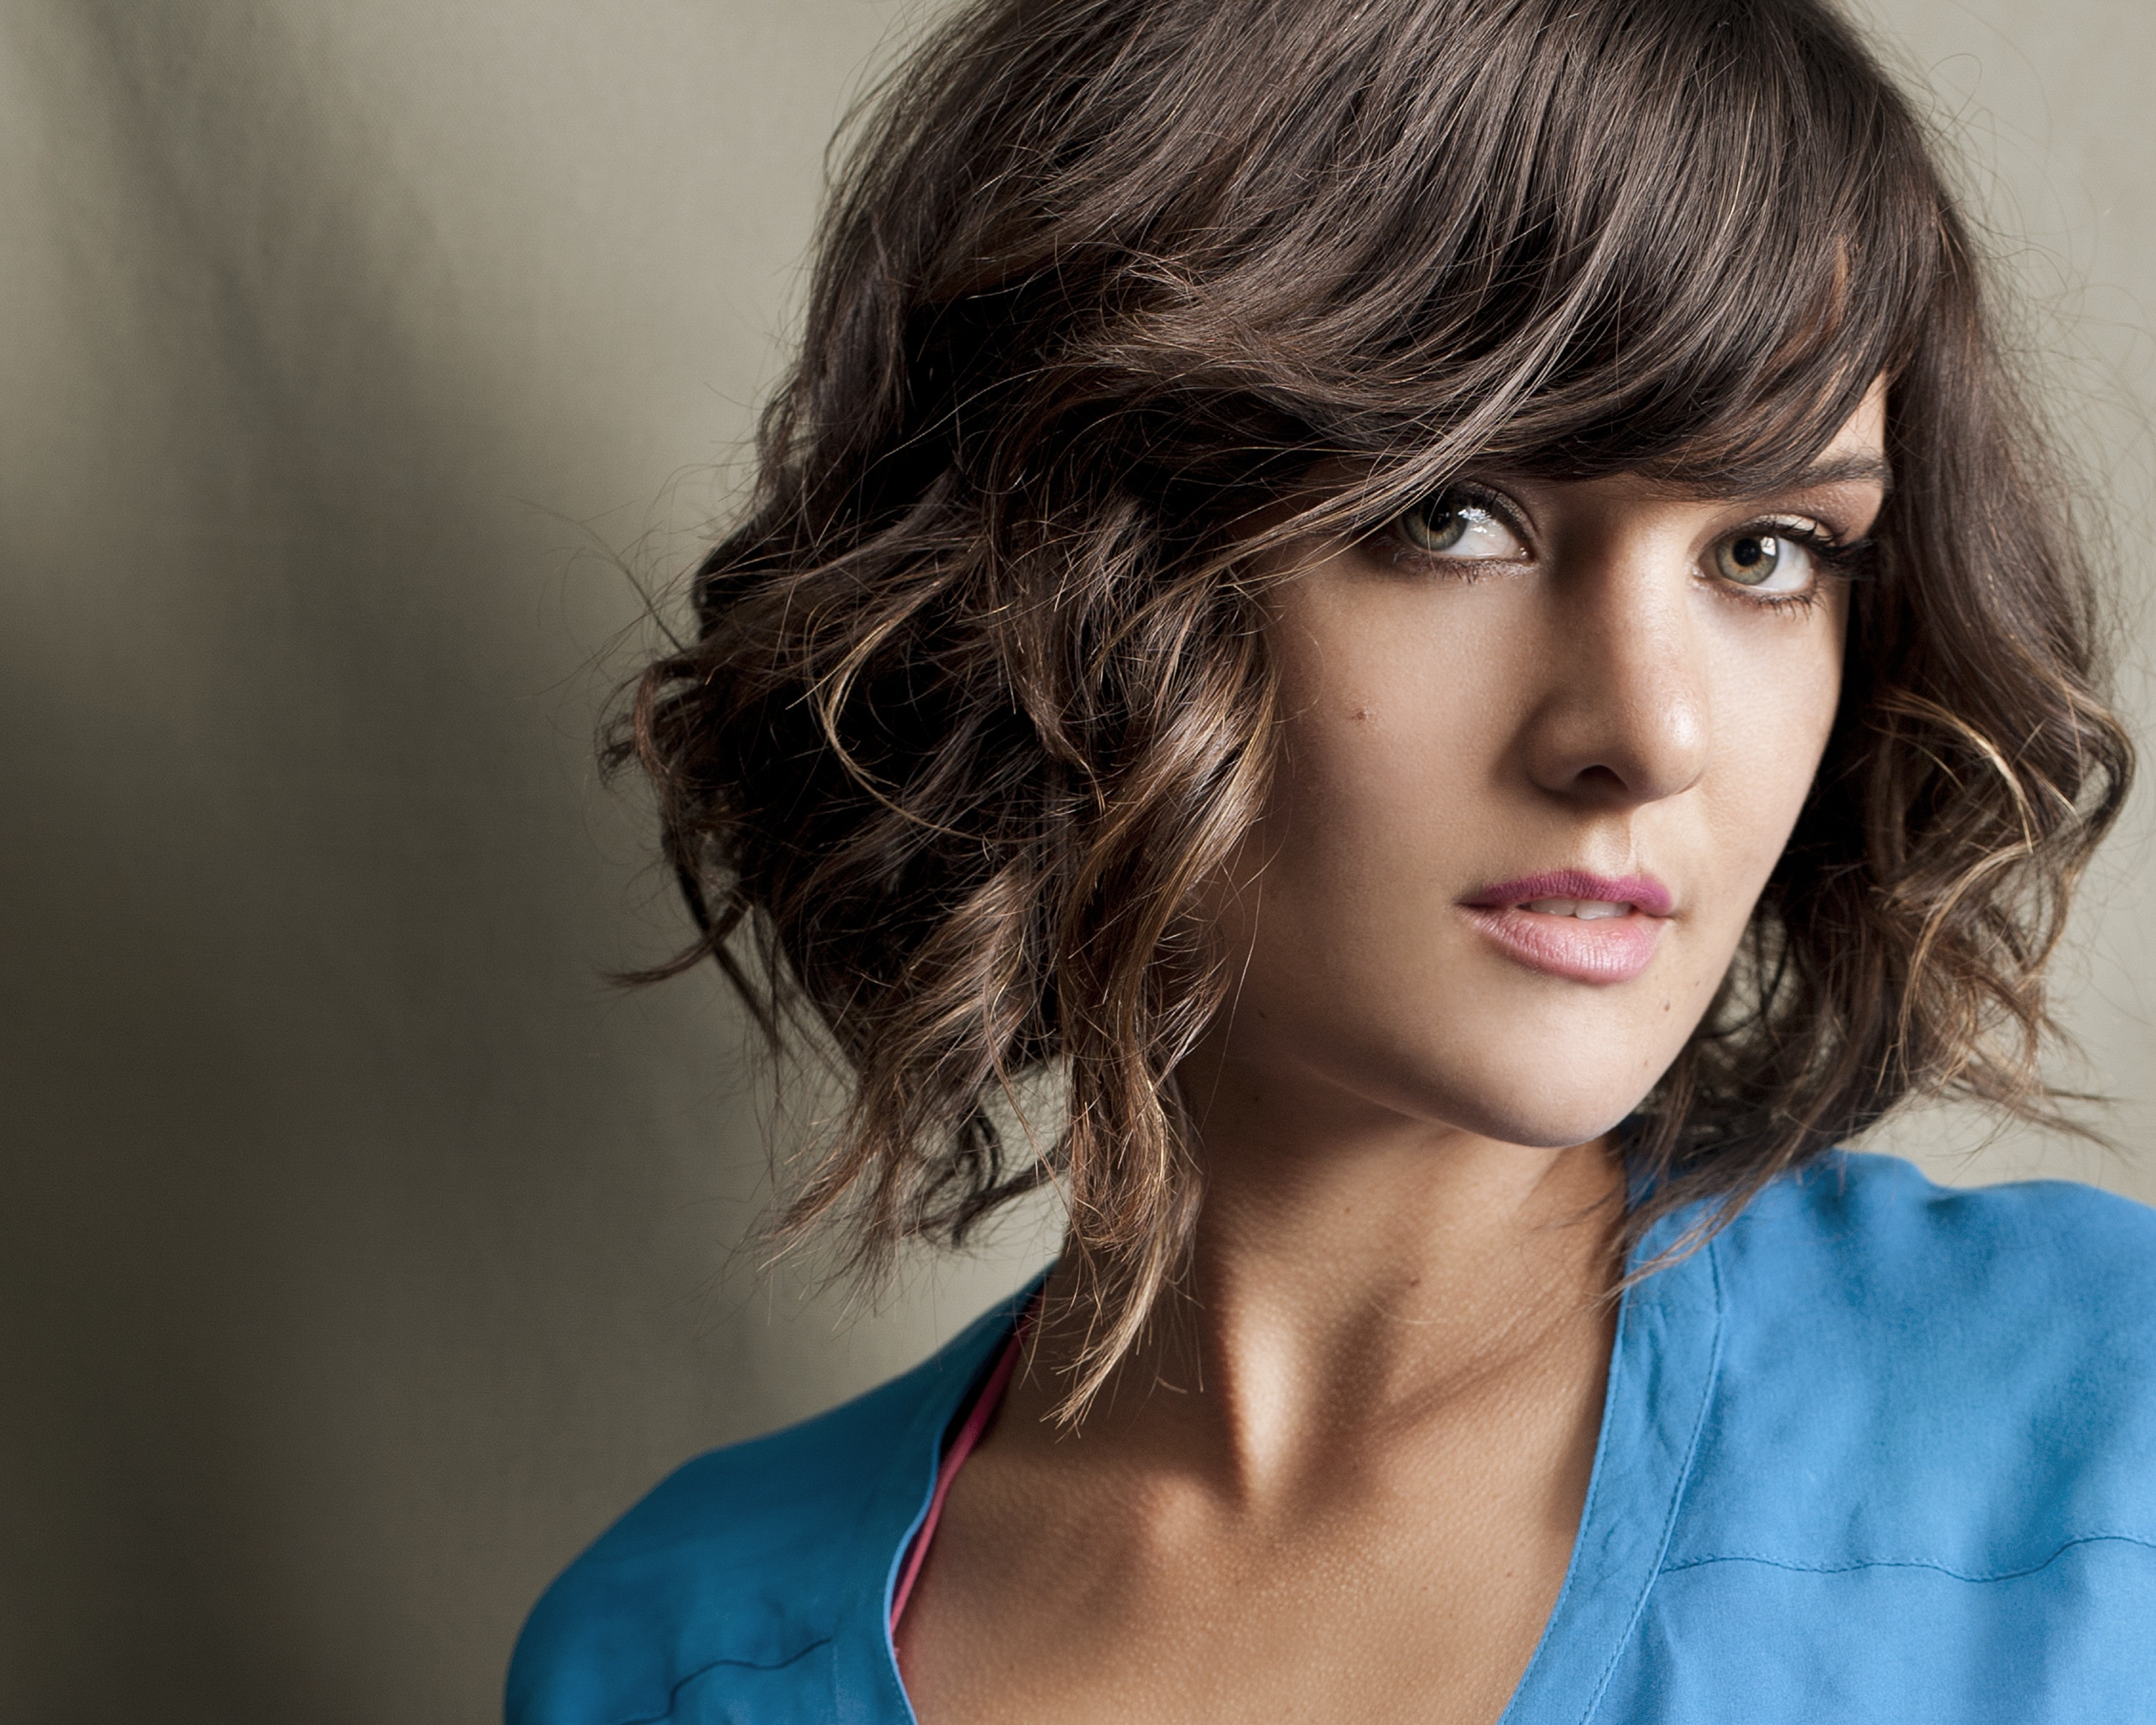 frankie shaw hairstyle wallpaper 60882